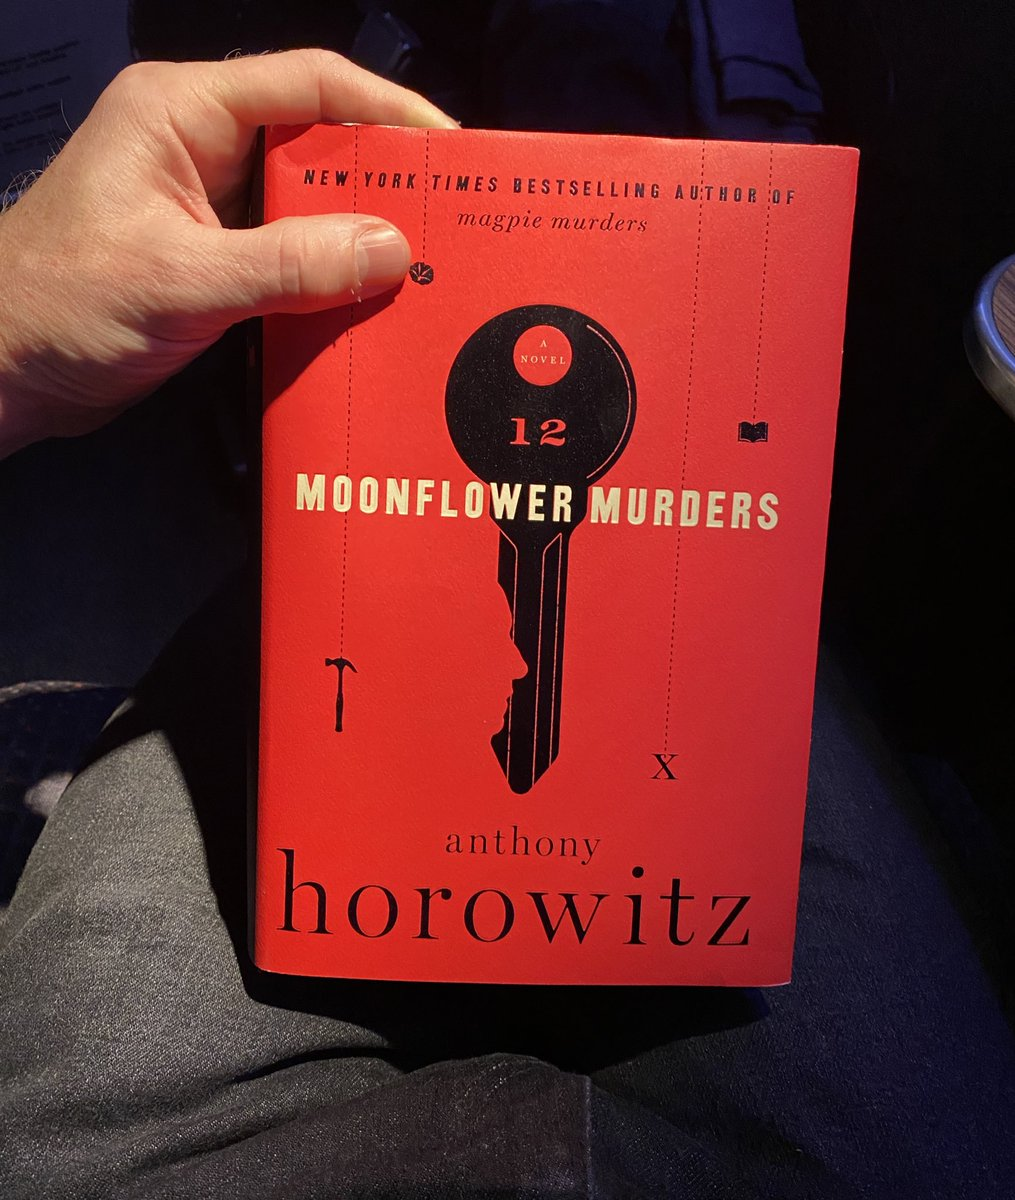 Beyond excited to begin reading the new book by @AnthonyHorowitz, Moonflower Murders. It's predecessor, Magpie Murders, is one of my favorite books ever. Cannn't waaaait. #murdermystery